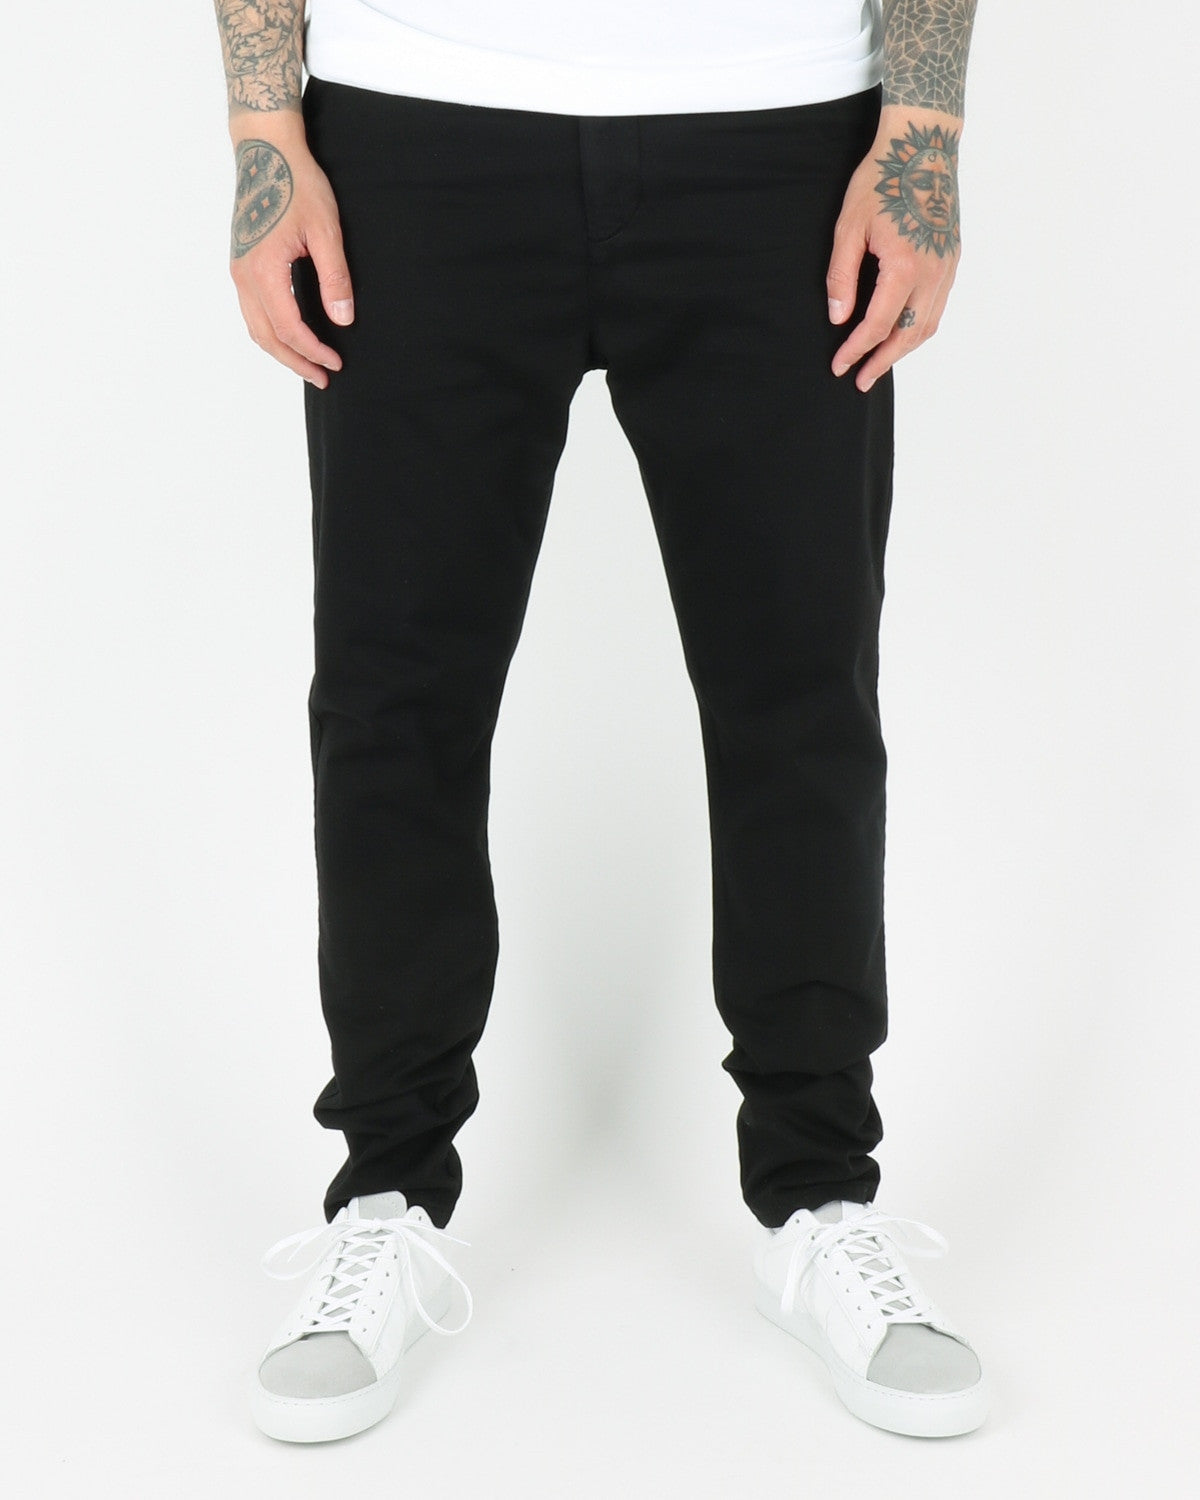 journal clothing_fine pc_pants_black_view_1_3